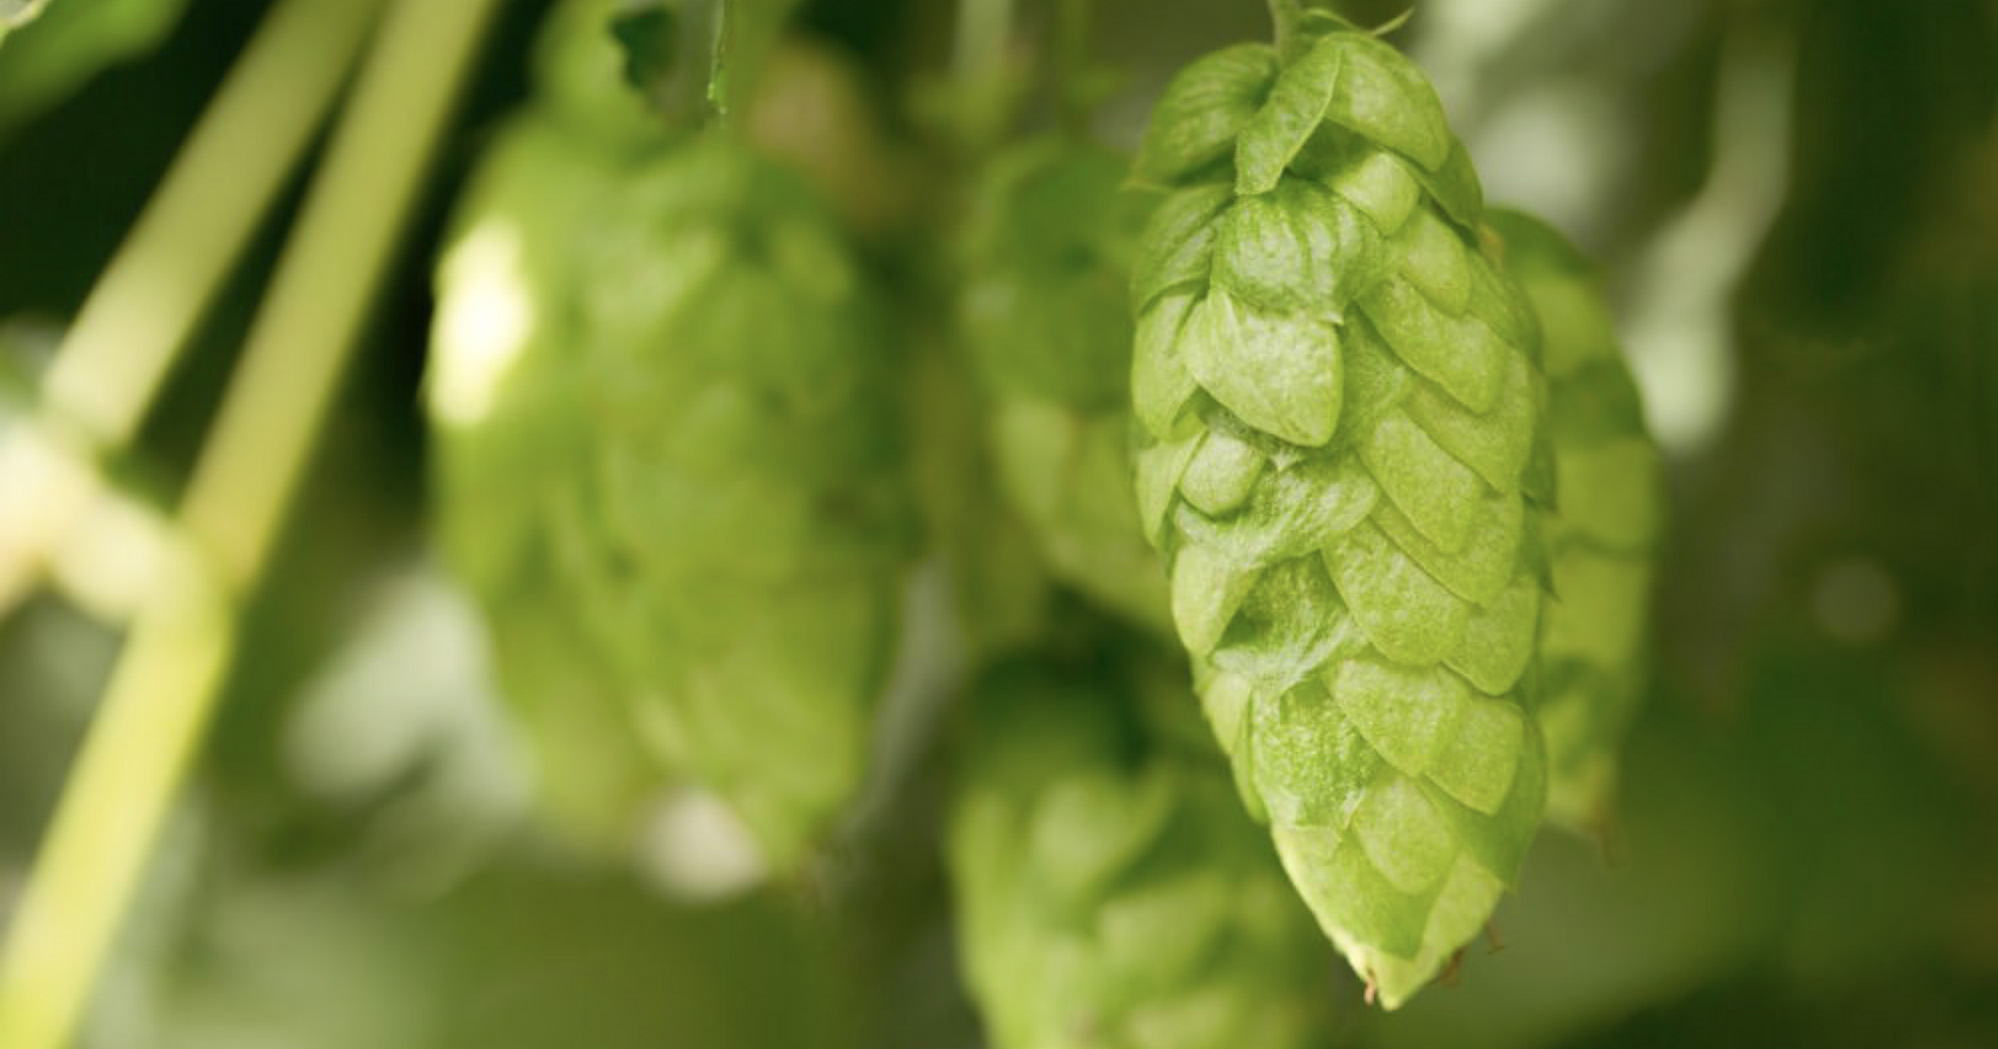 The Colorado Brewers Guild Experiments with New Hopsteiner Hops for Symposium Ale